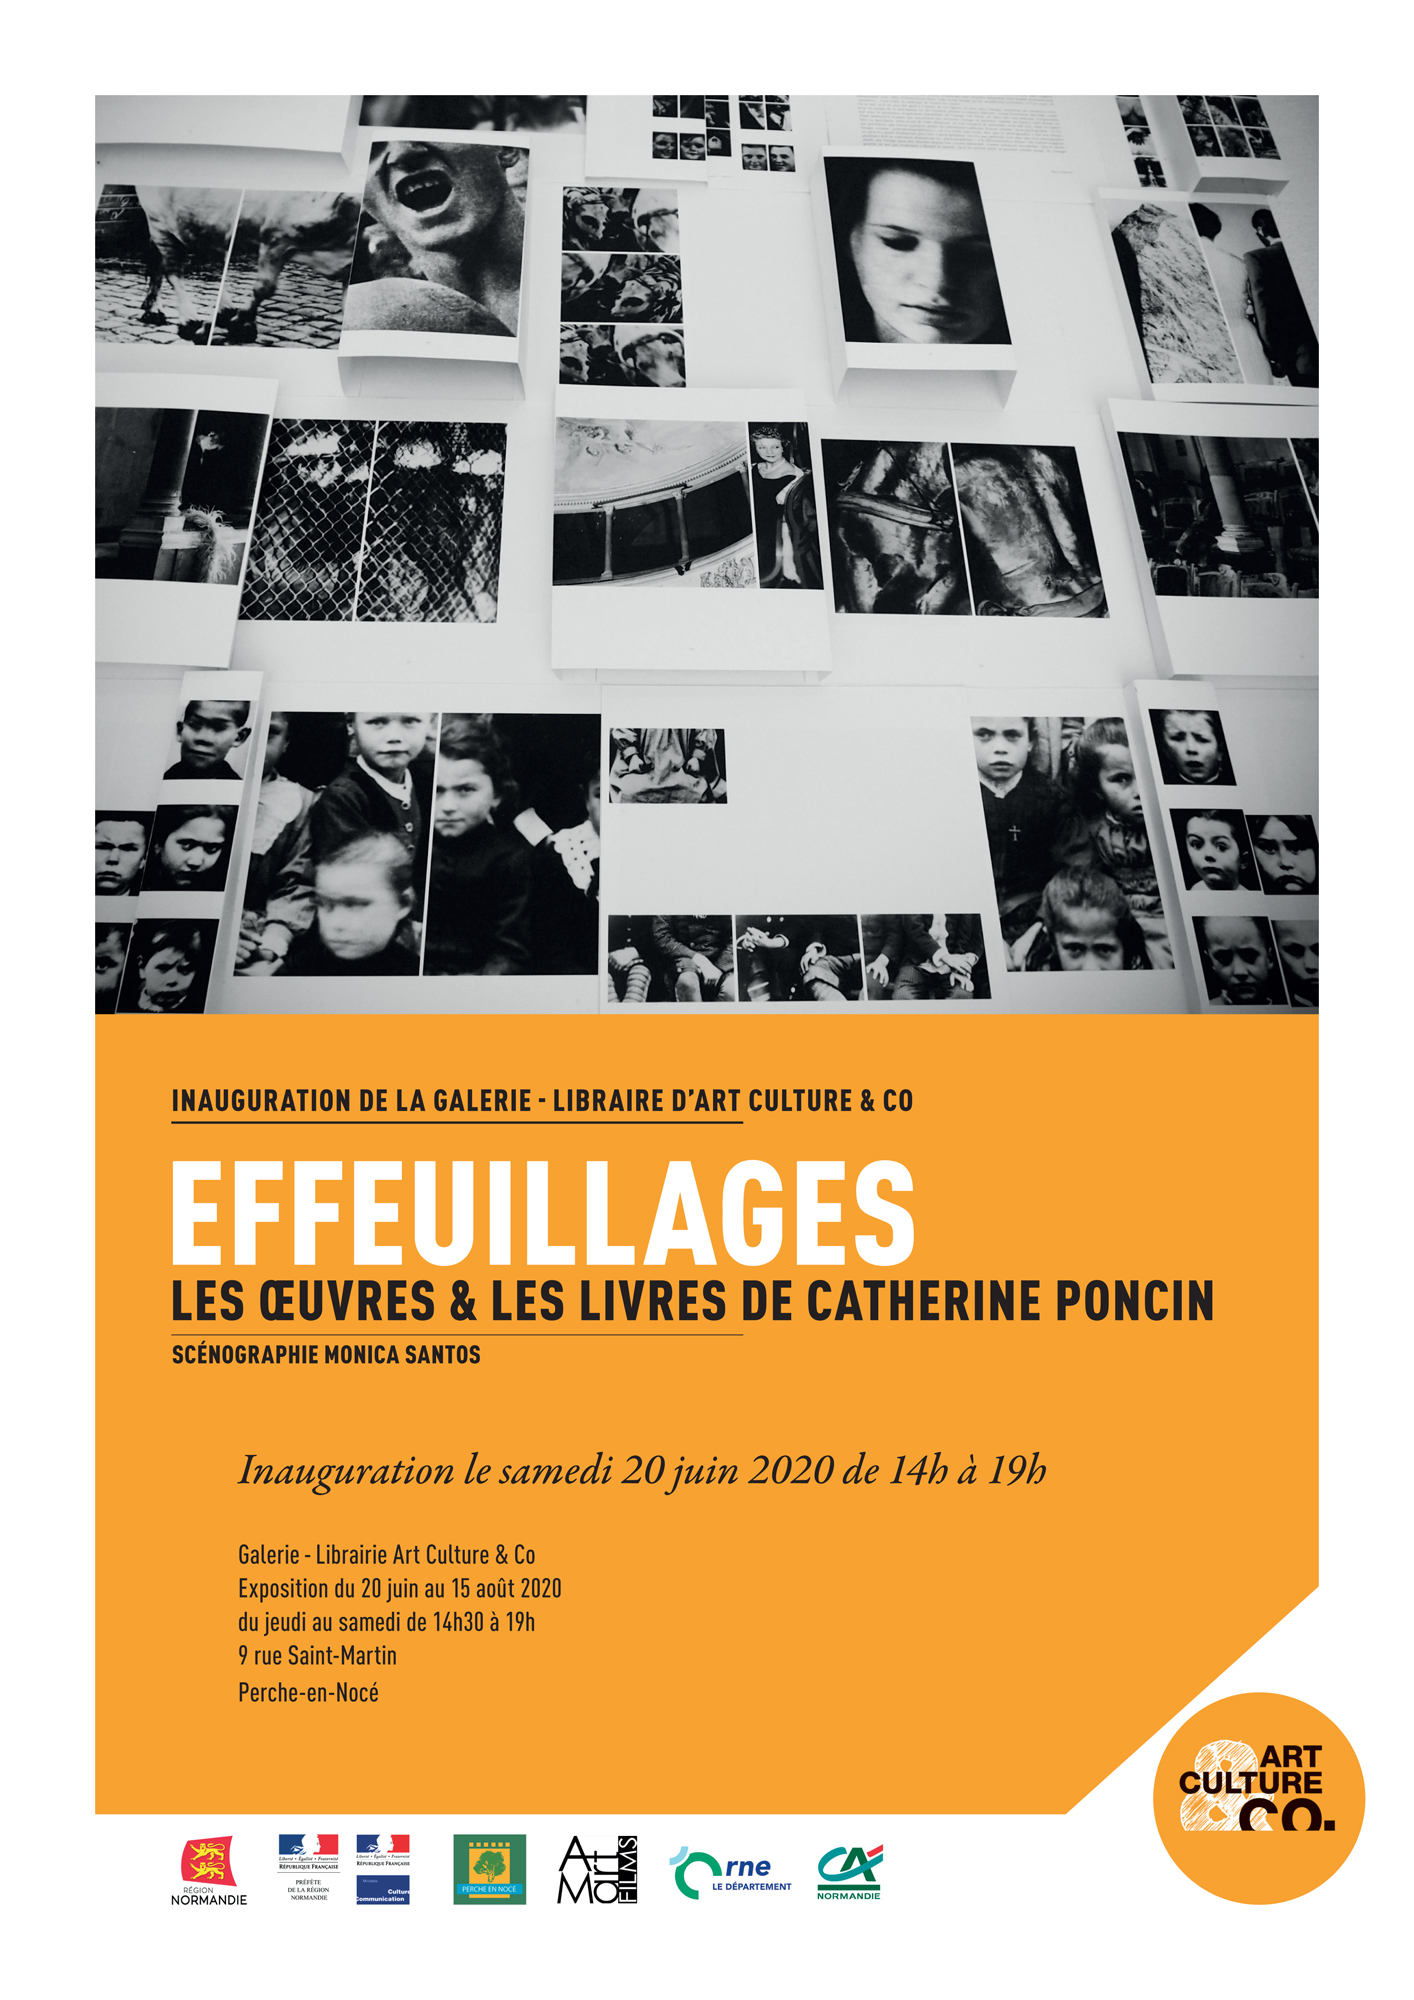 Effeuillages Catherine Poncin